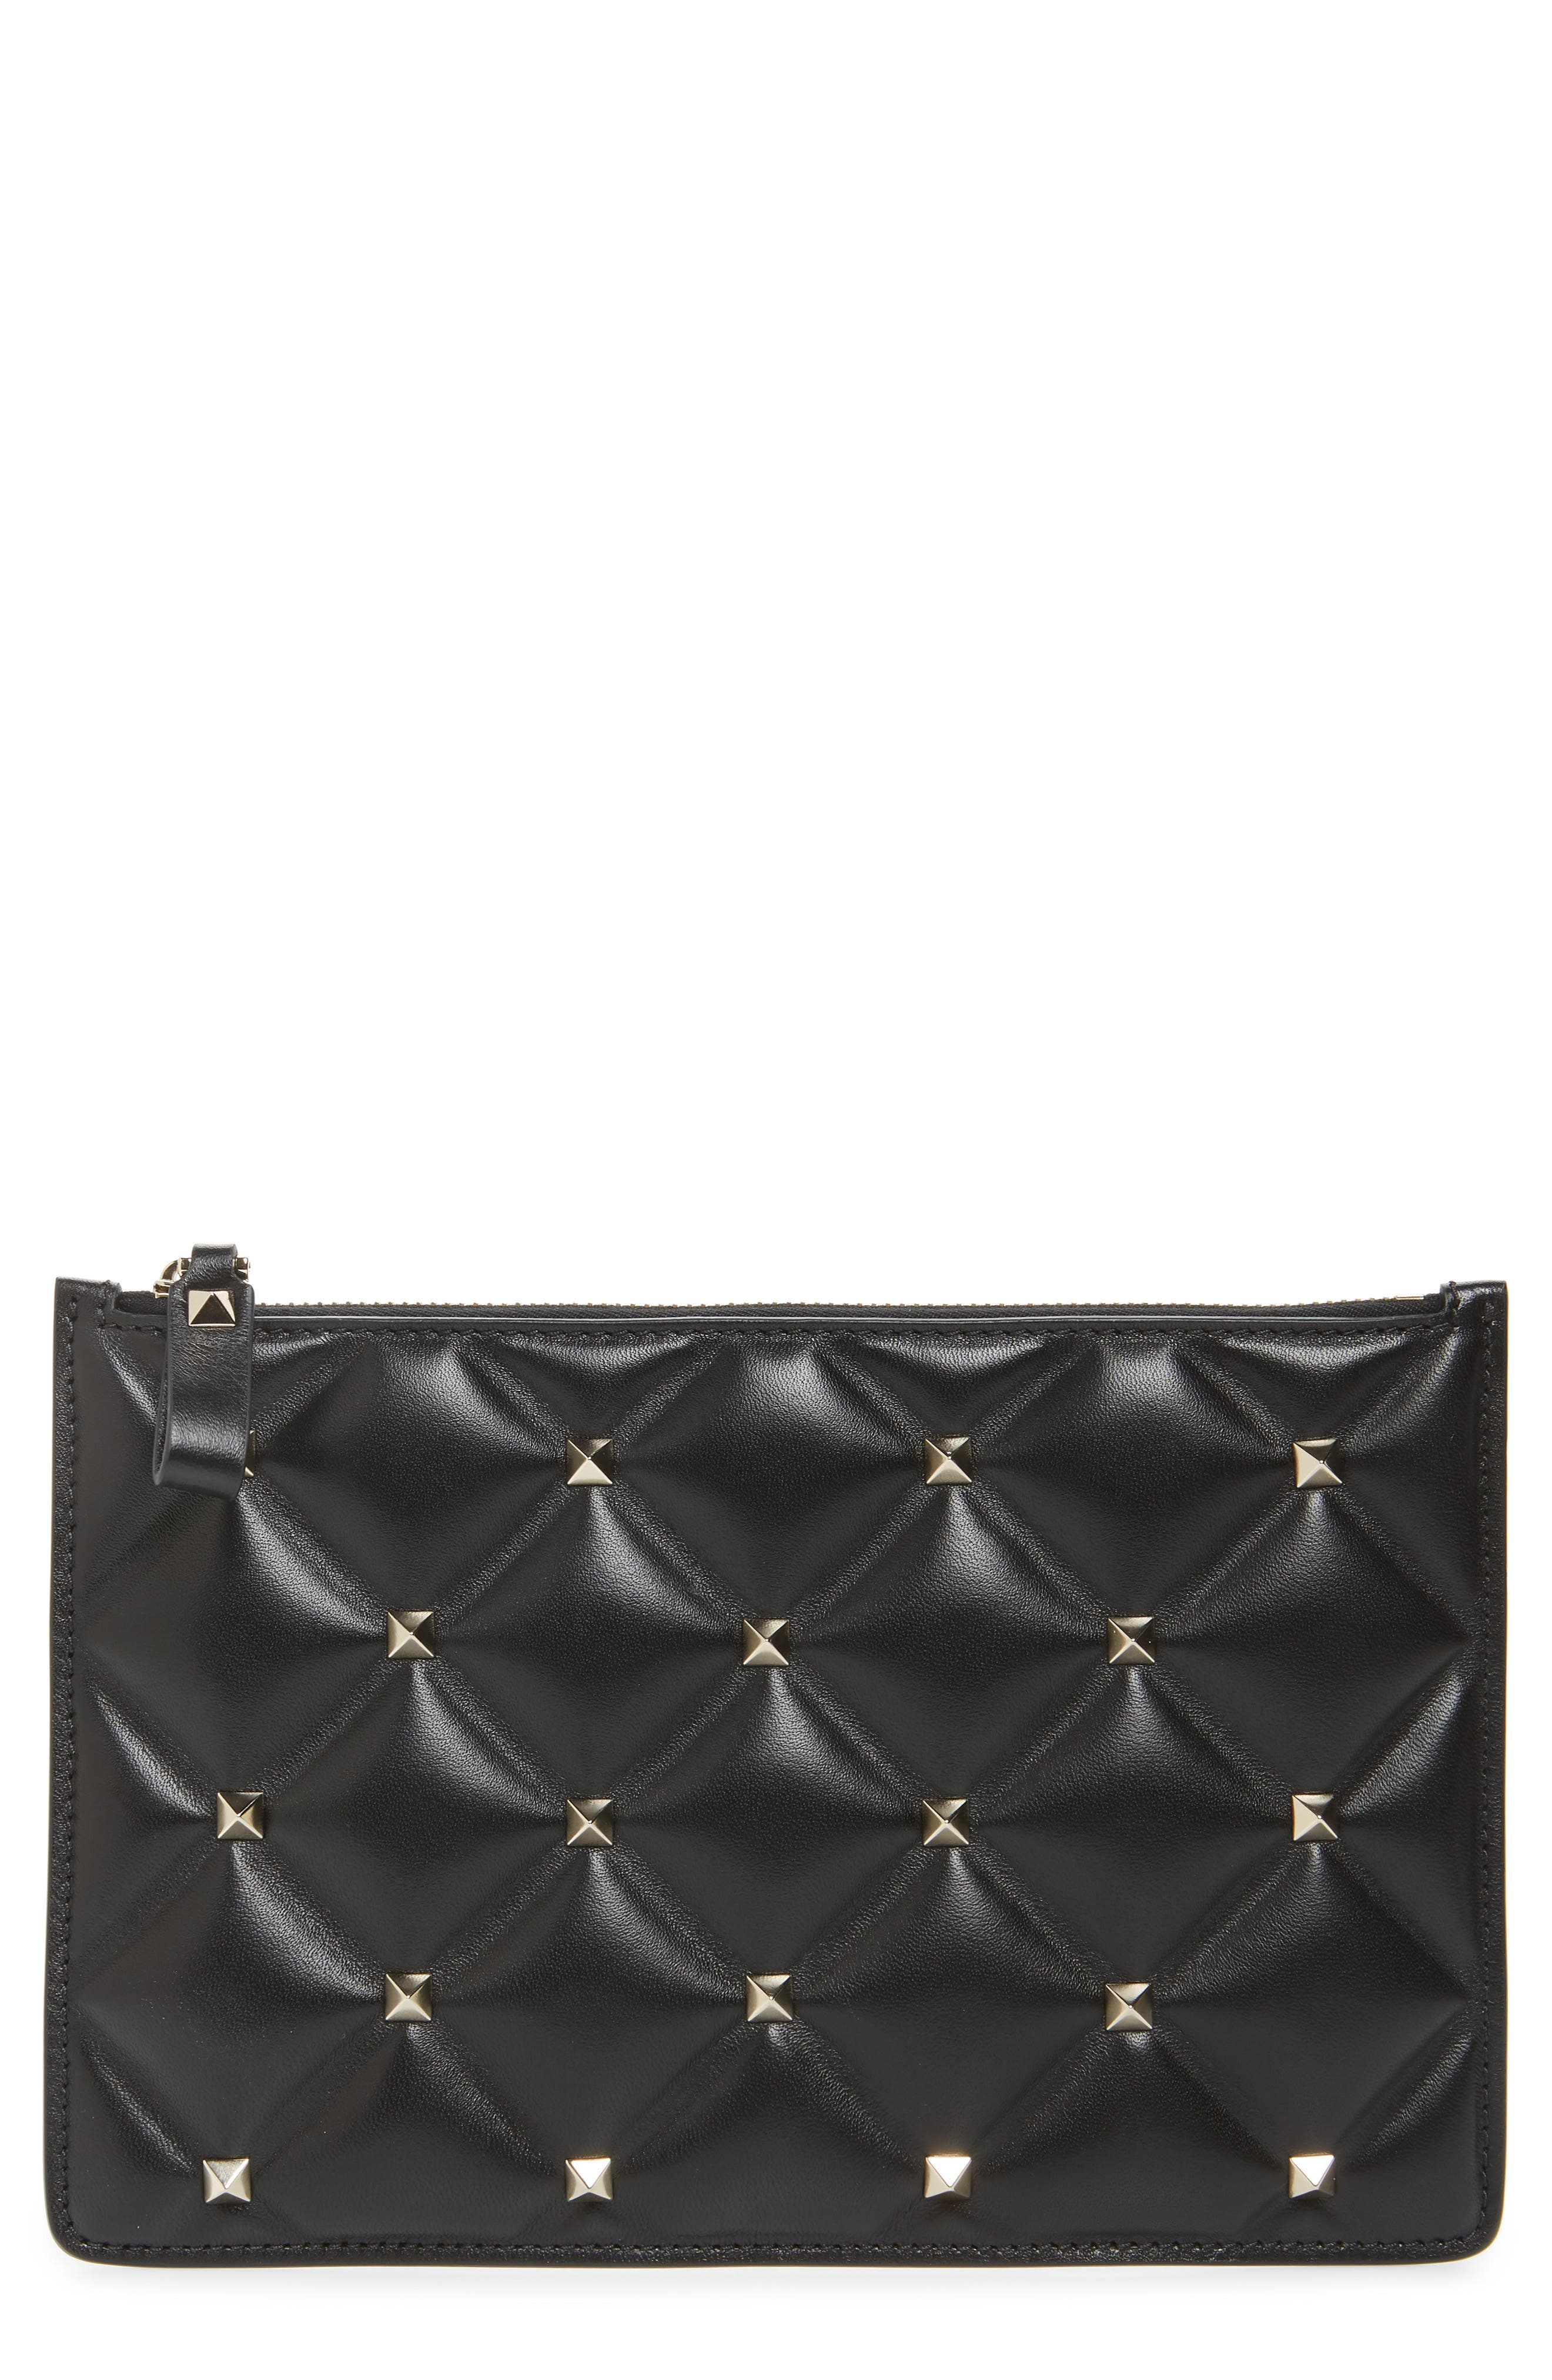 Medium Candystud Leather Pouch - Black in Nero